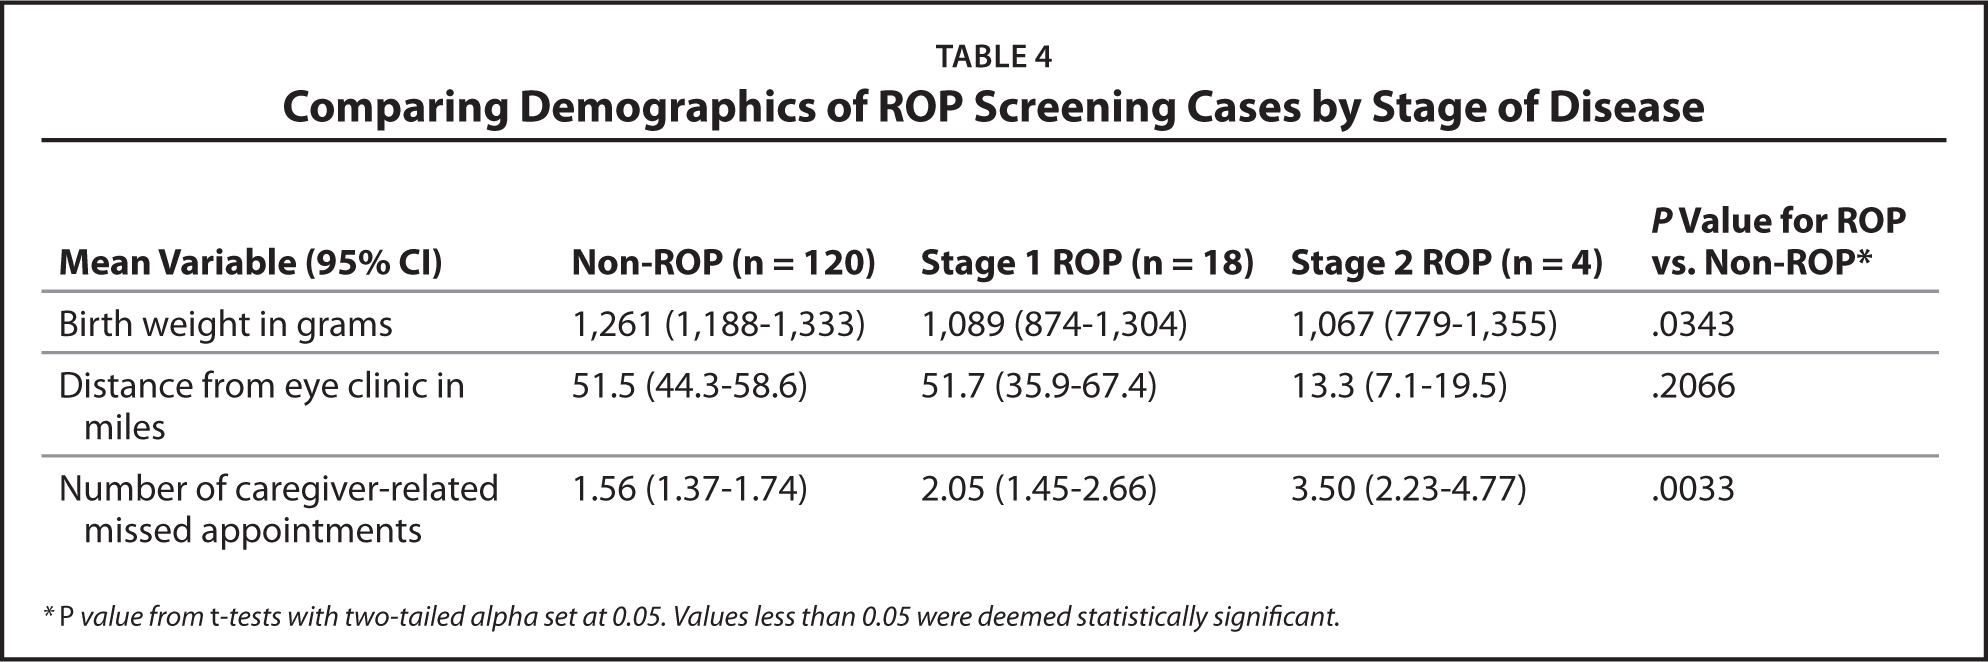 Comparing Demographics of ROP Screening Cases by Stage of Disease